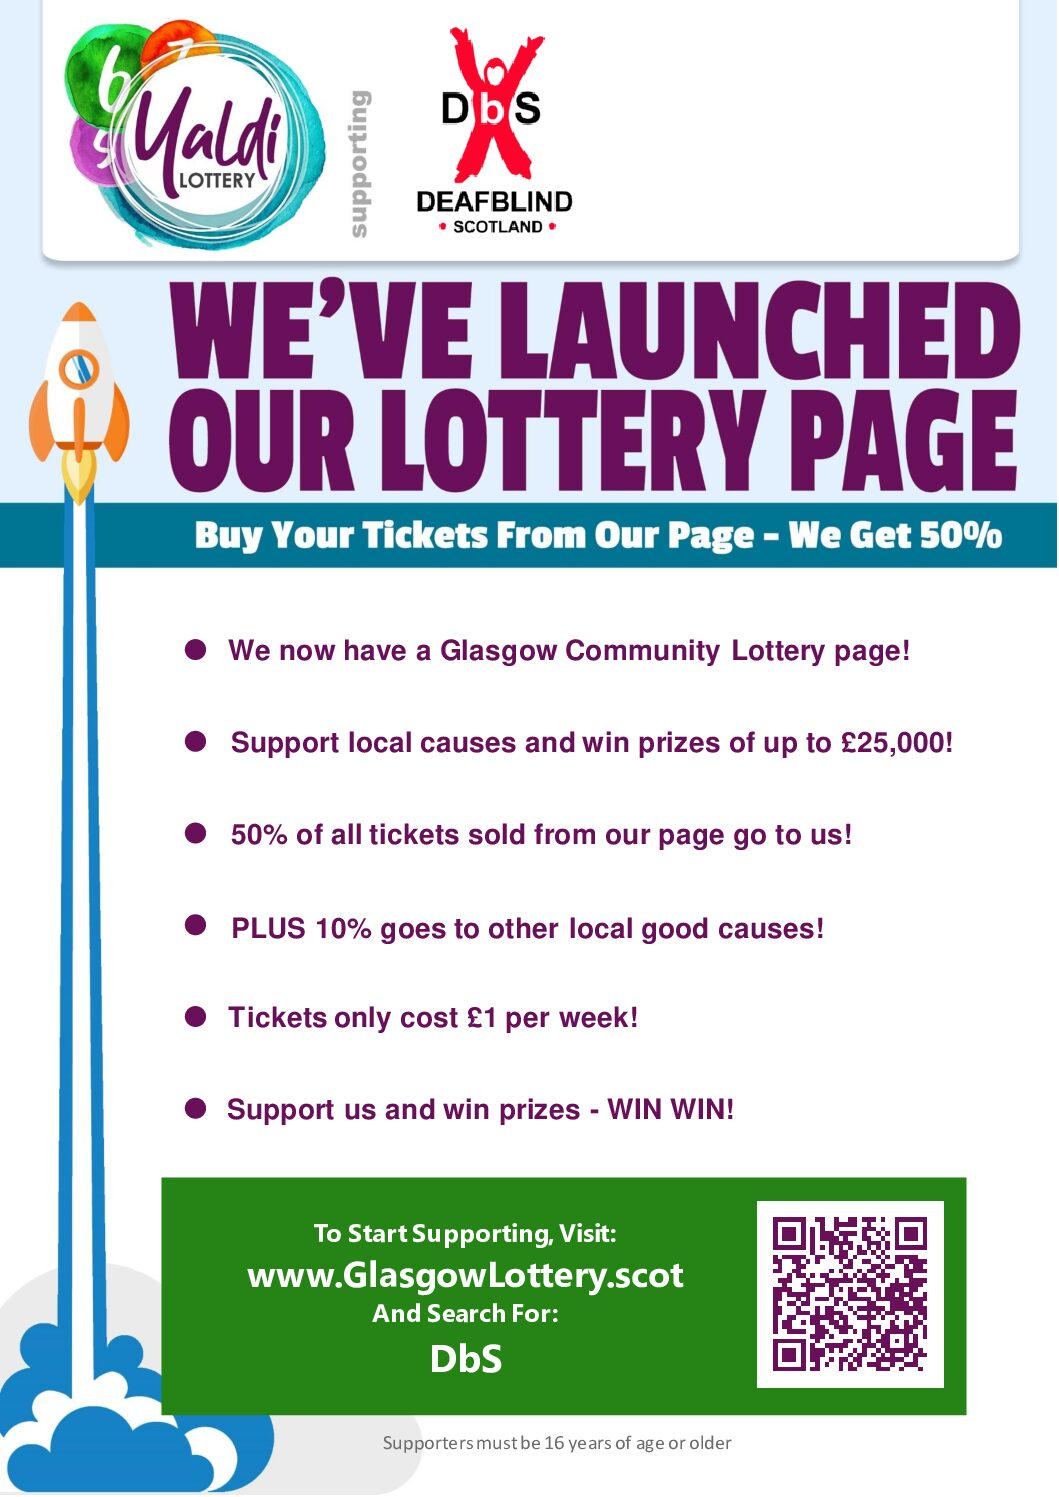 Glasgow Community Lottery, Yaldi!